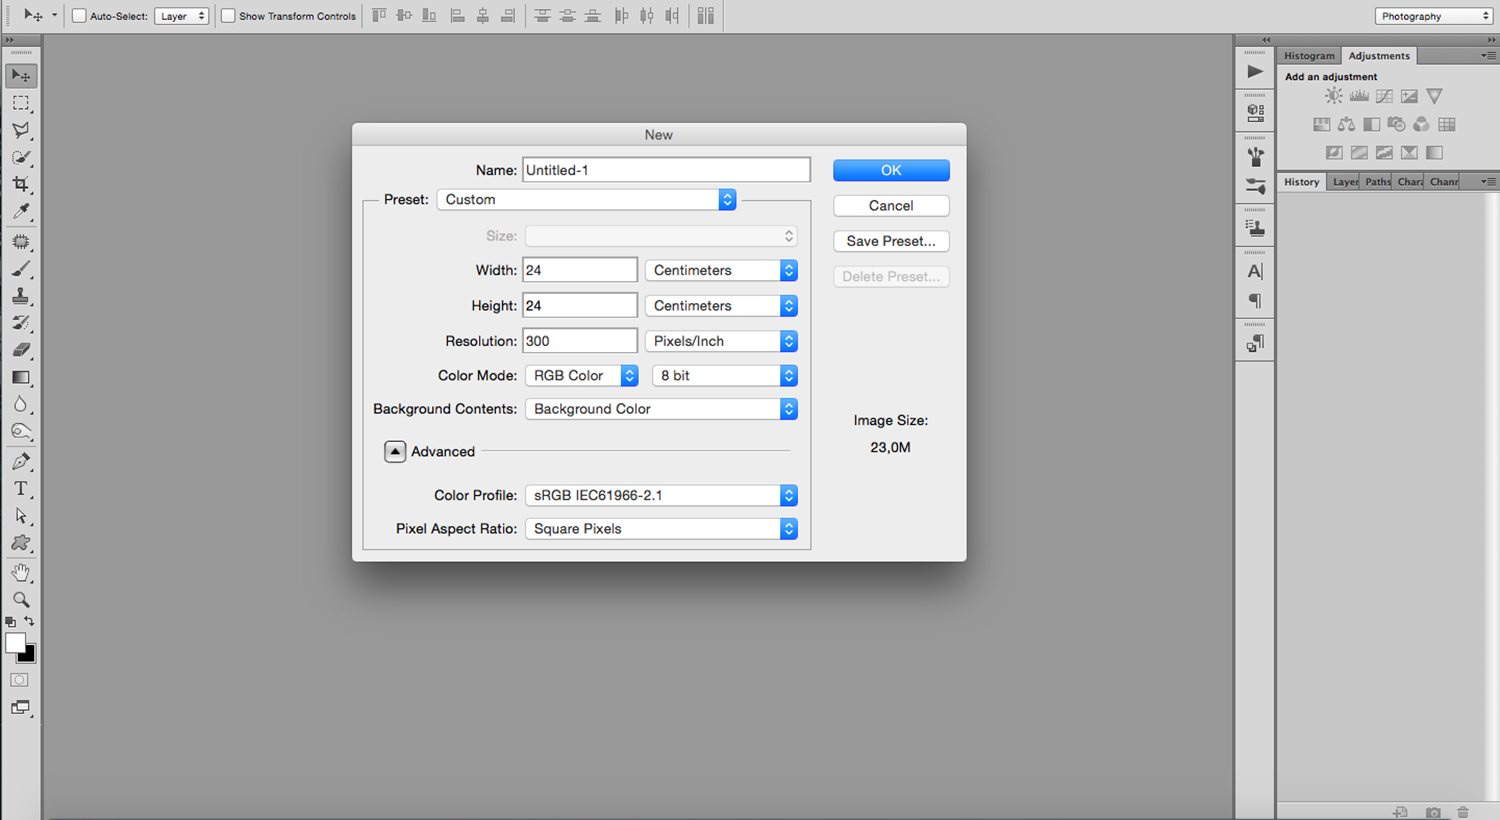 Open a new document in Photoshop